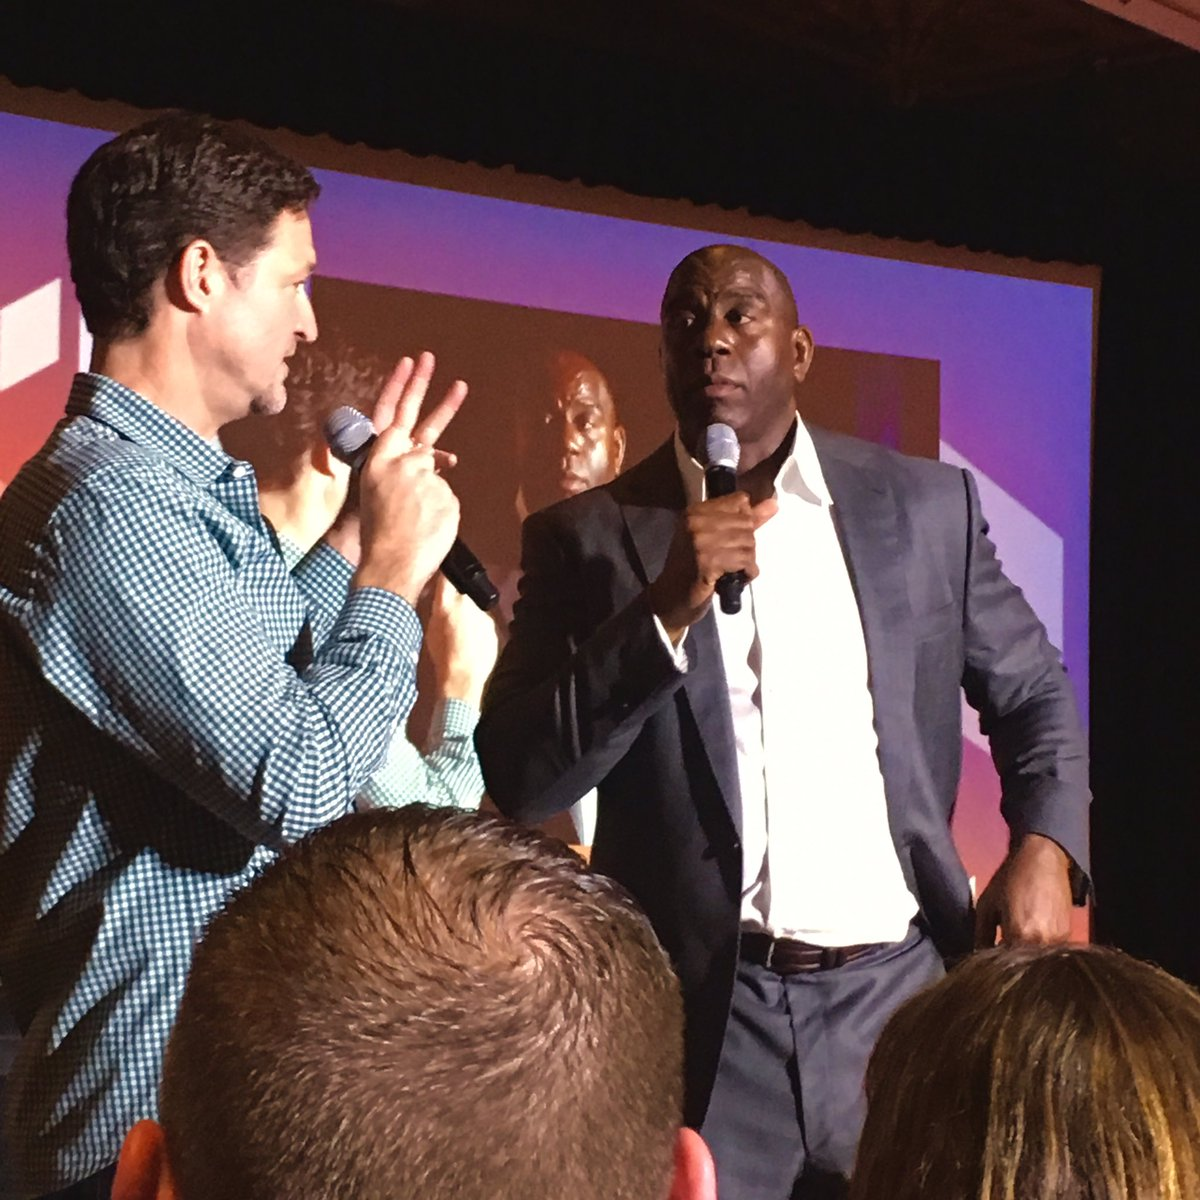 yo: Q&A with @MagicJohnson at  #MagentoImagine https://t.co/R0FKzo9chg